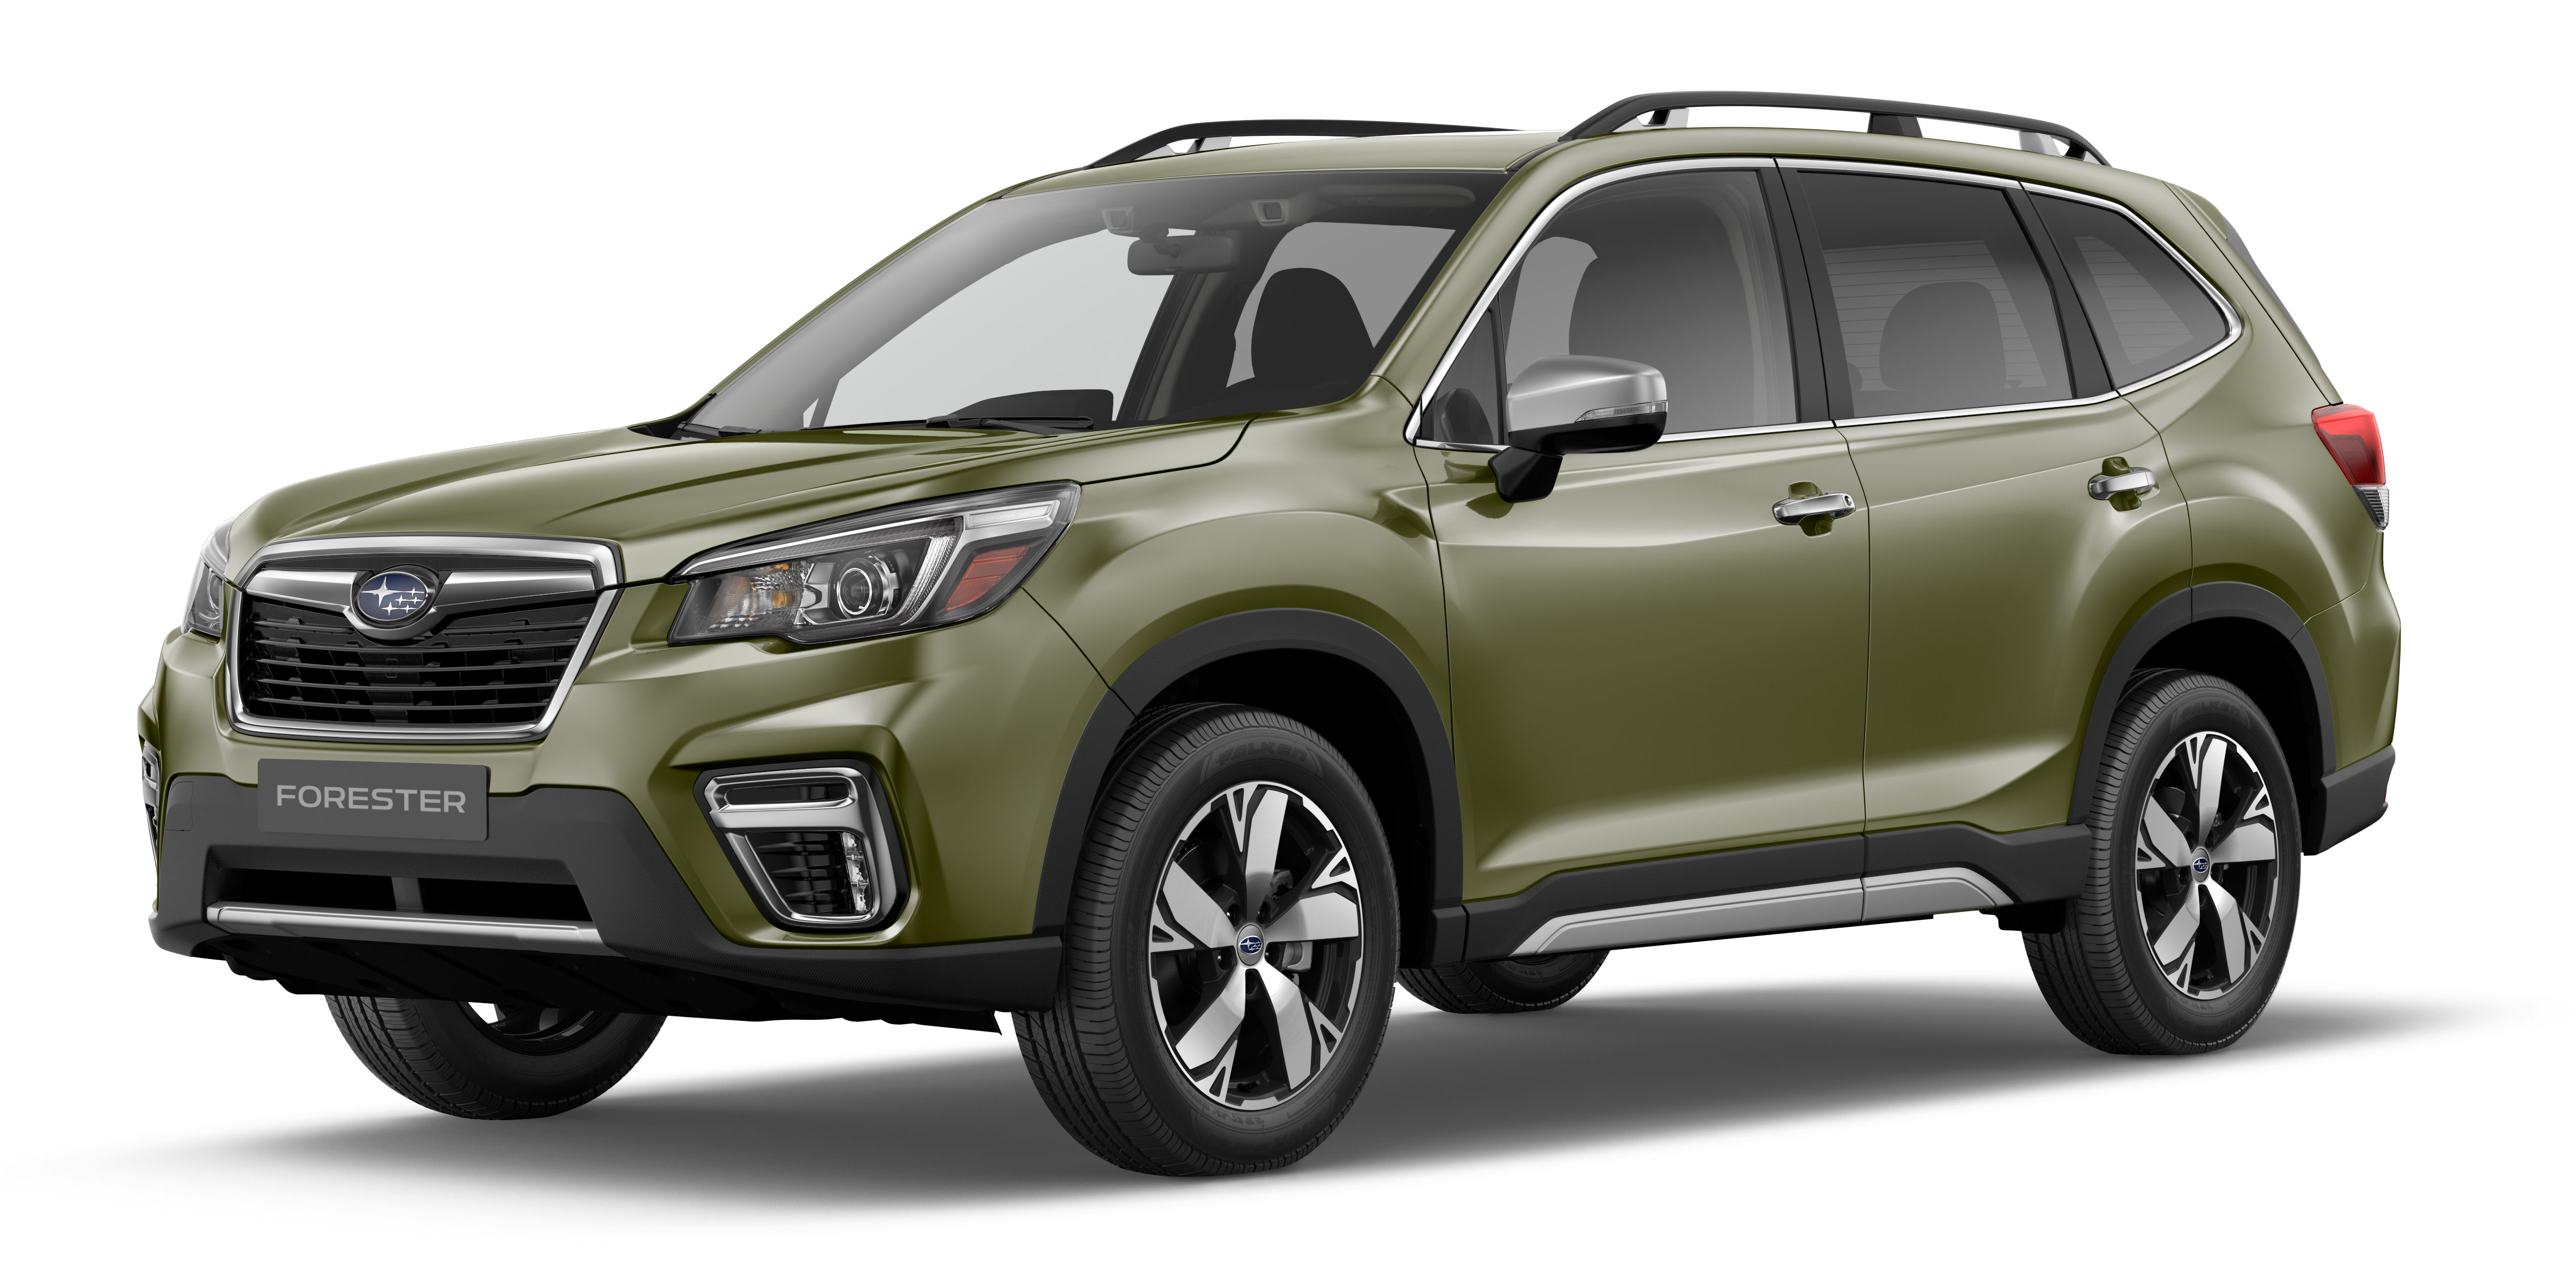 New 2019 Subaru Forester Makes Debut Torque